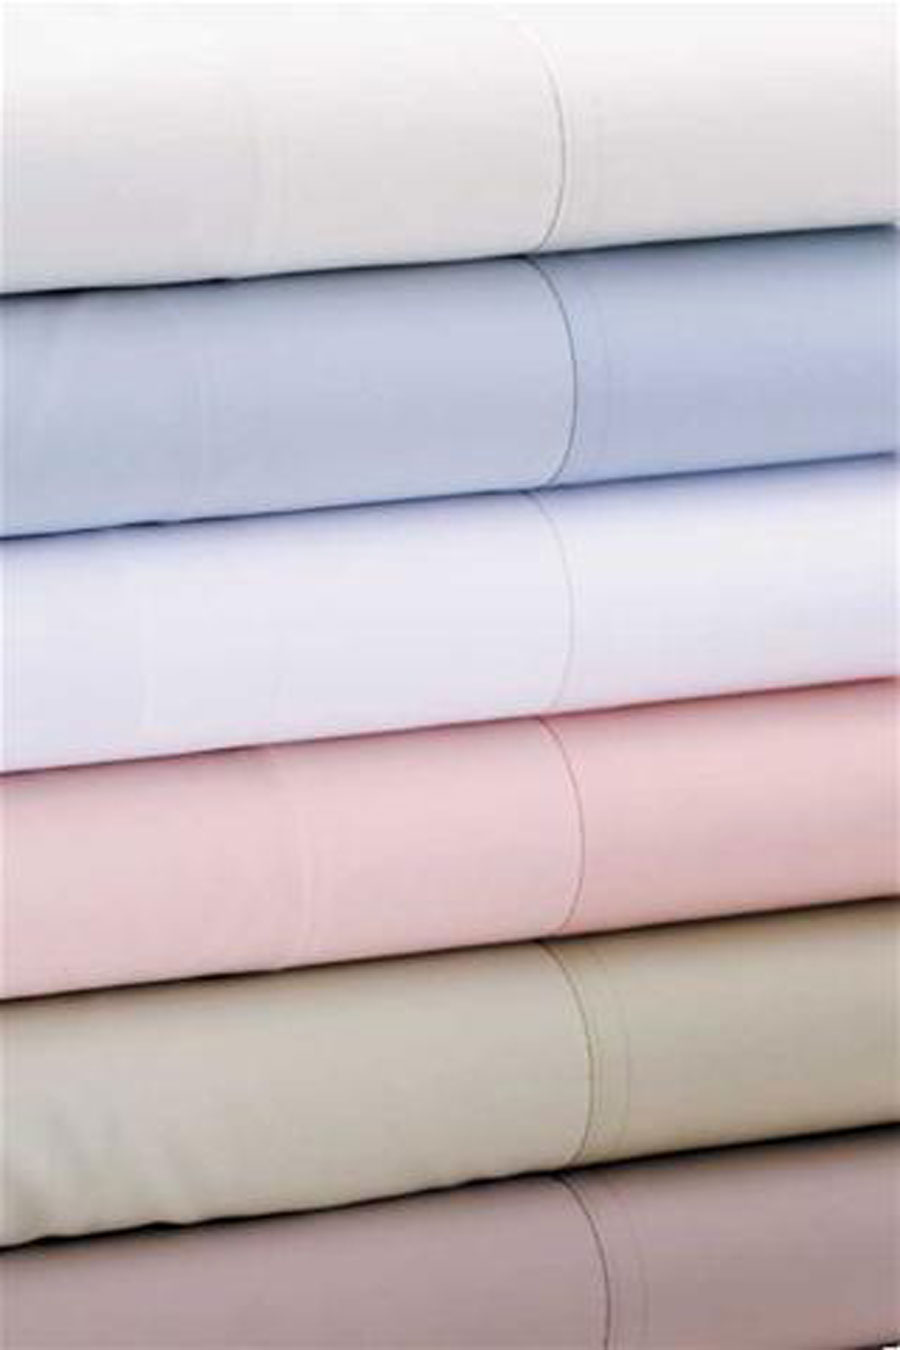 Basic Bedding 600 Thread Count 100% Egyptian Cotton Sateen by Daniadown